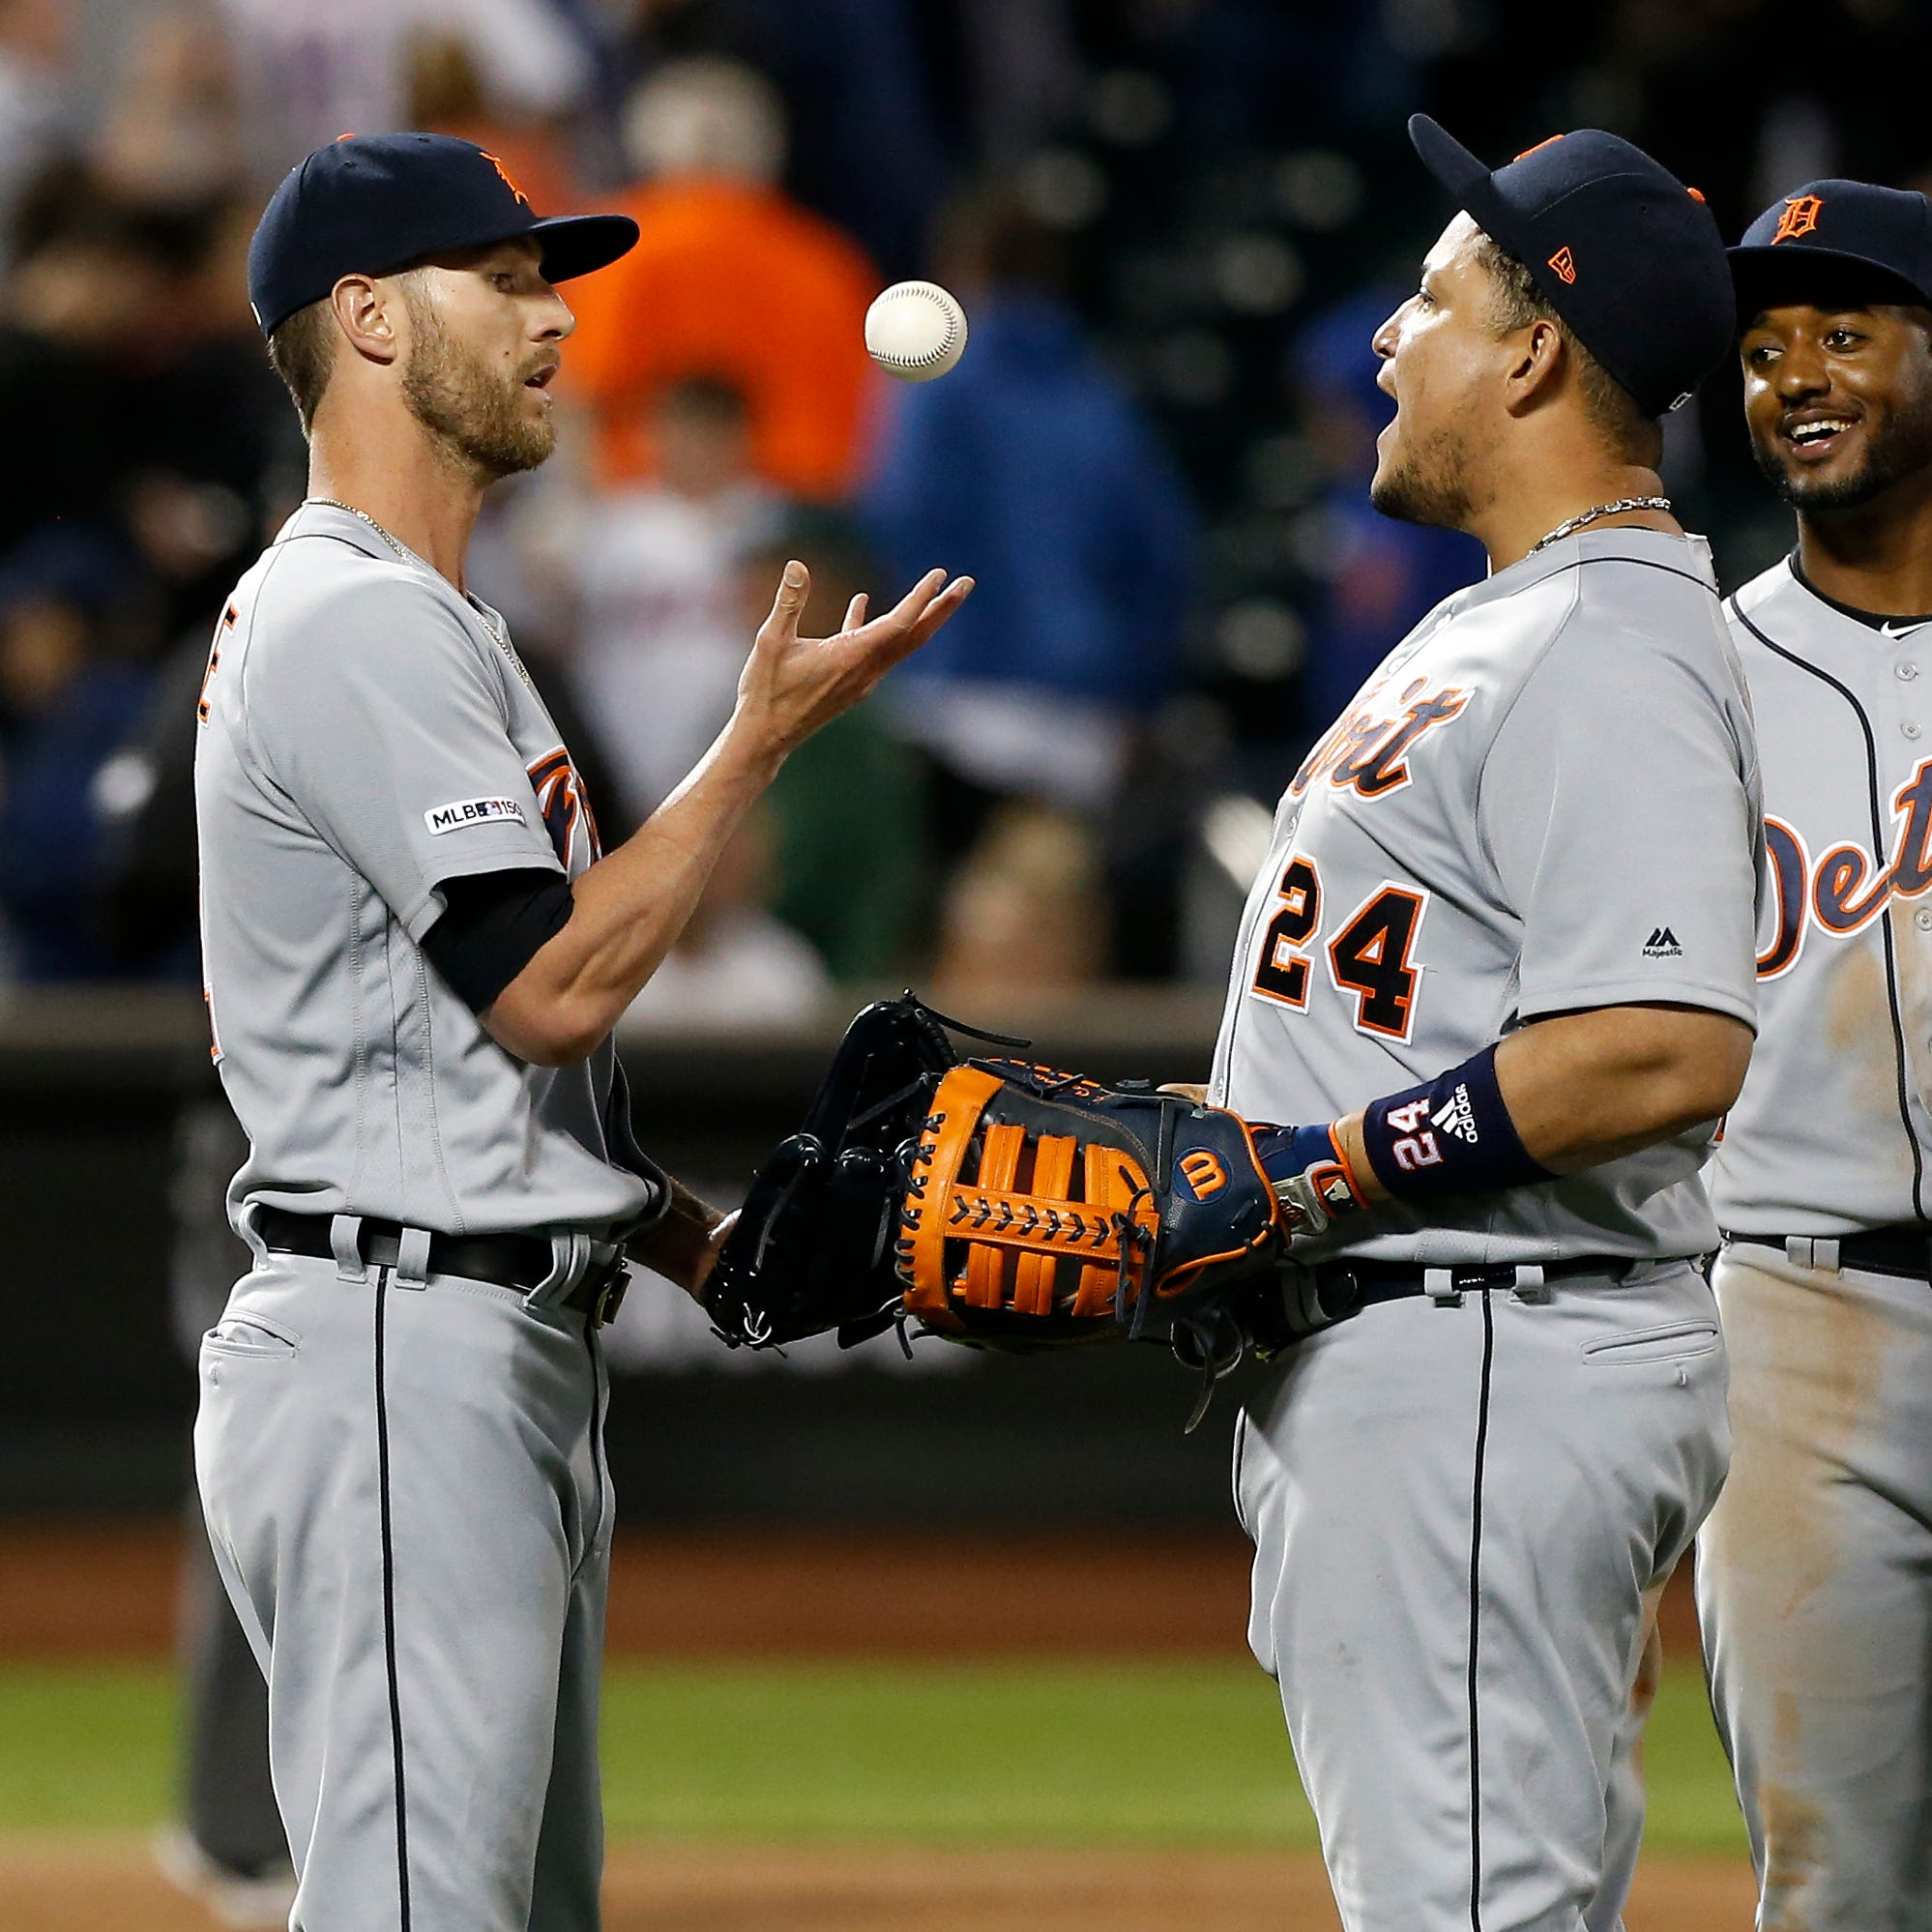 At long last, Detroit Tigers' losing streak snapped in big win vs. Mets